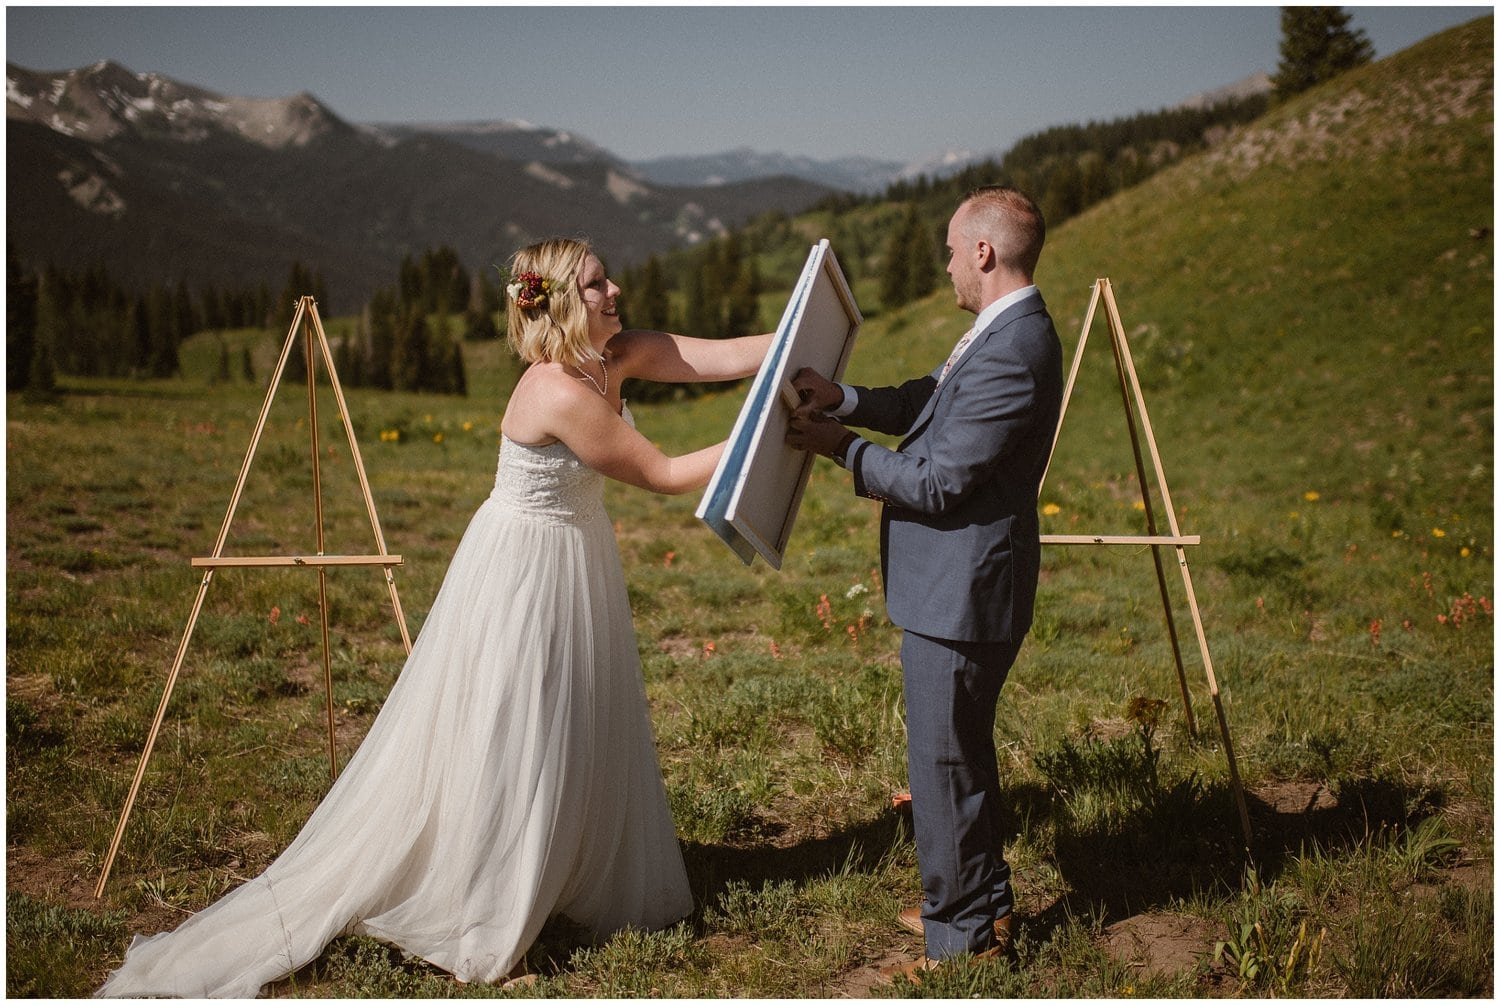 Bride and groom hold paint canvases toward each other during their adventure elopement.